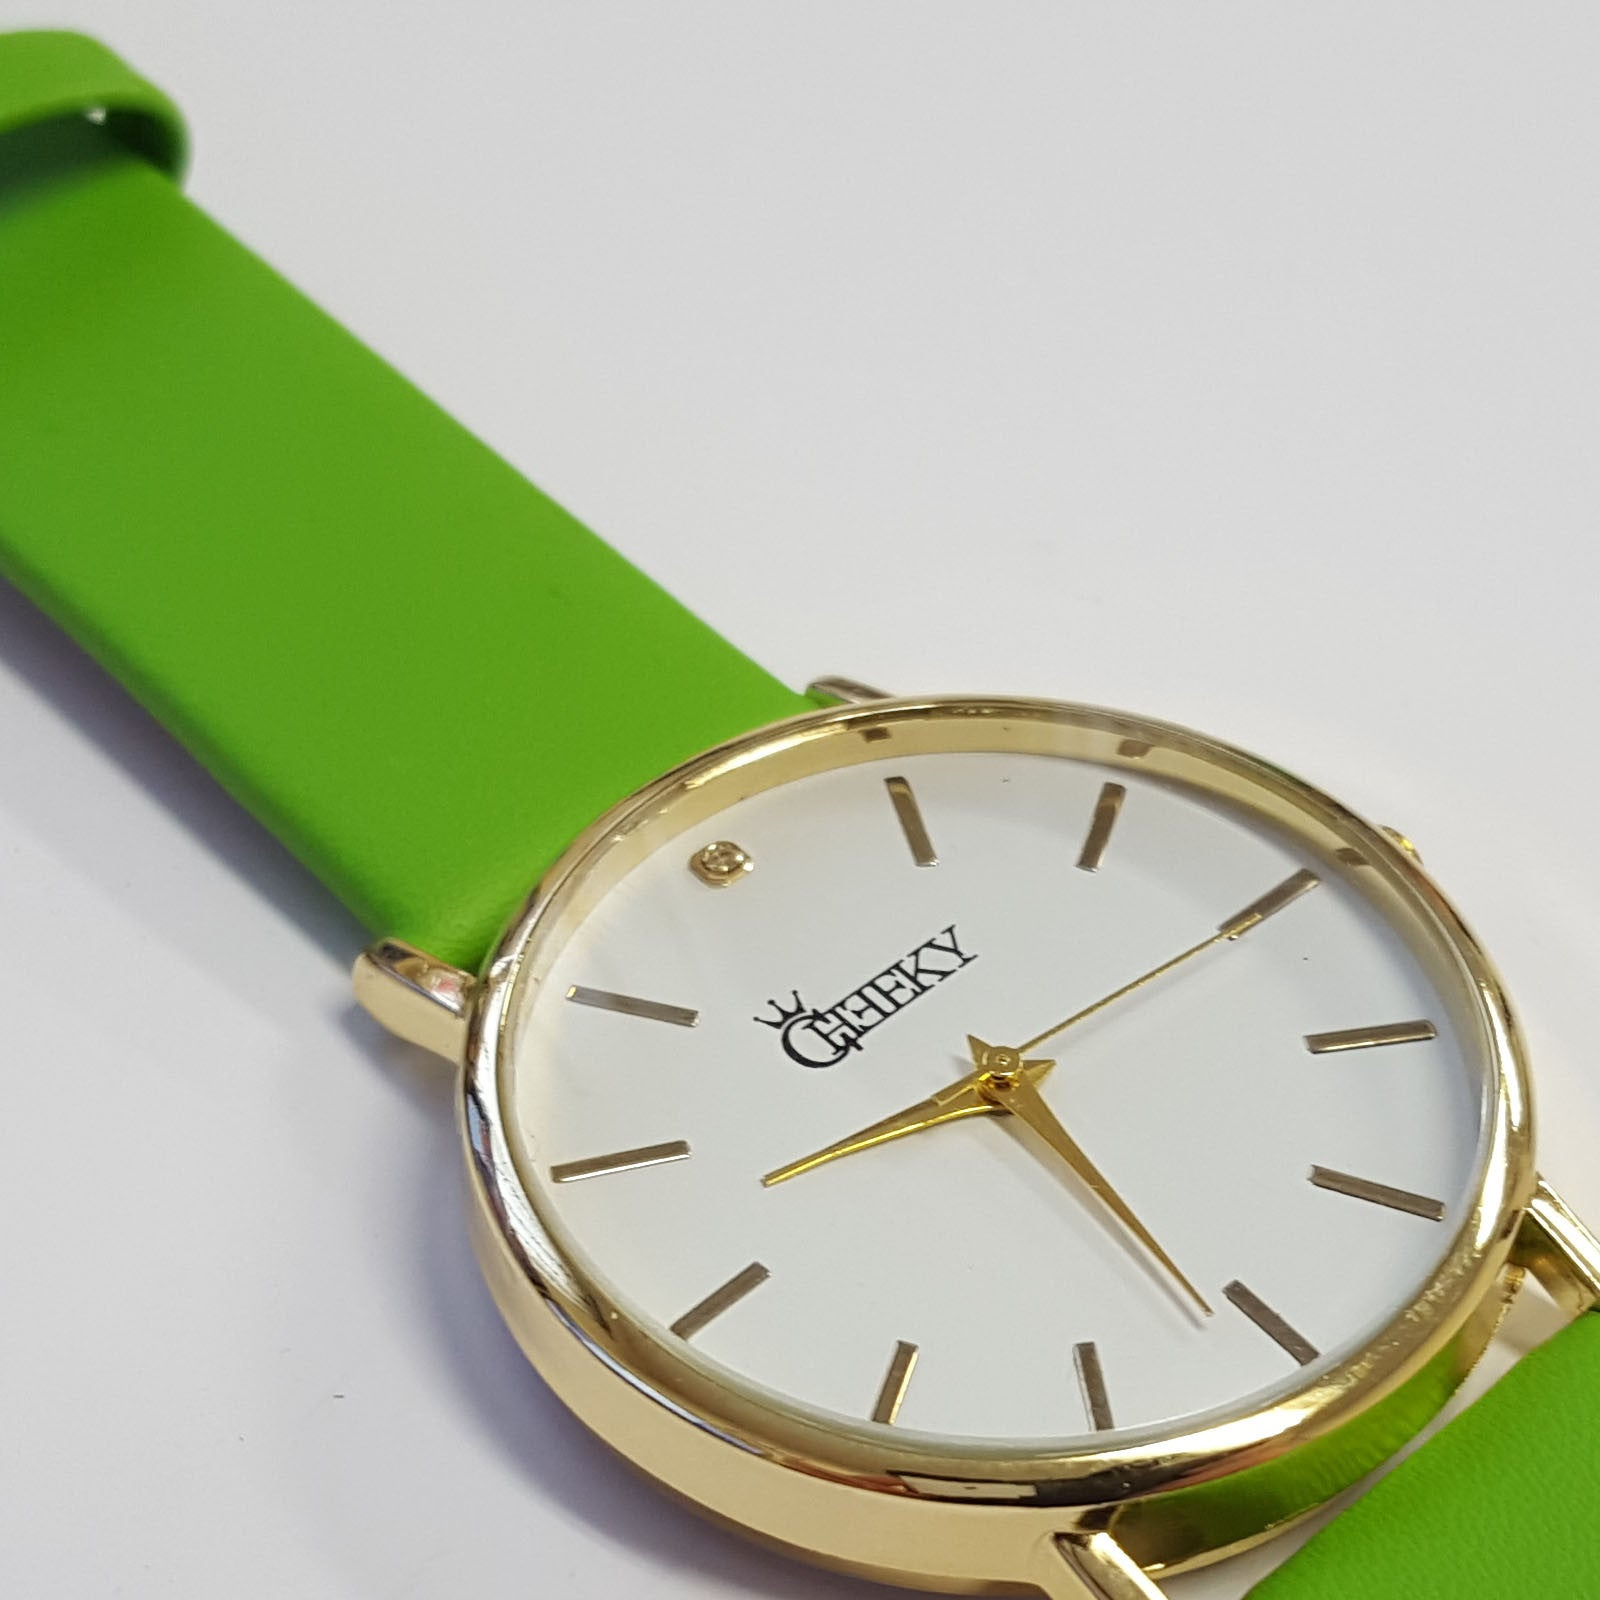 timex watches easy tan com anniversary green reader face